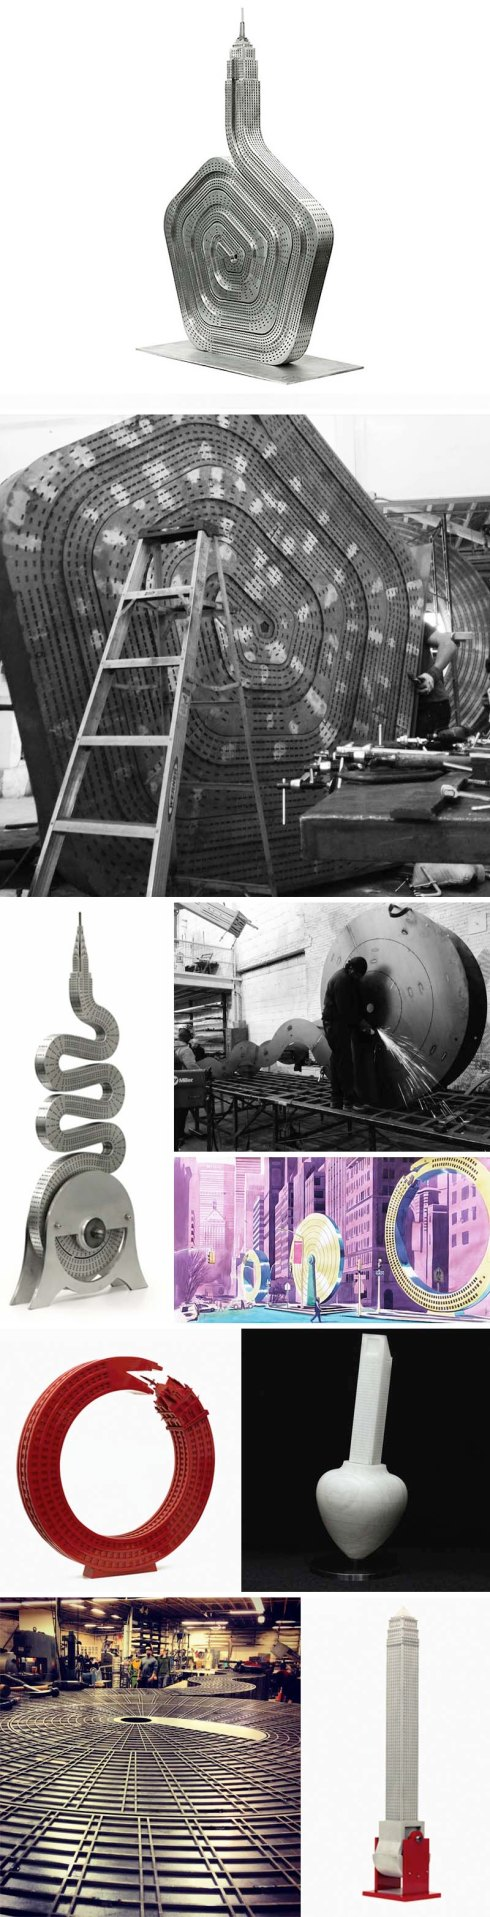 No Limits on Park Avenue Mall, Sculptures of Iconic NYC Buildings by Alexandre Arrechea, whimsical contemporary sculpture, MagnanMetz